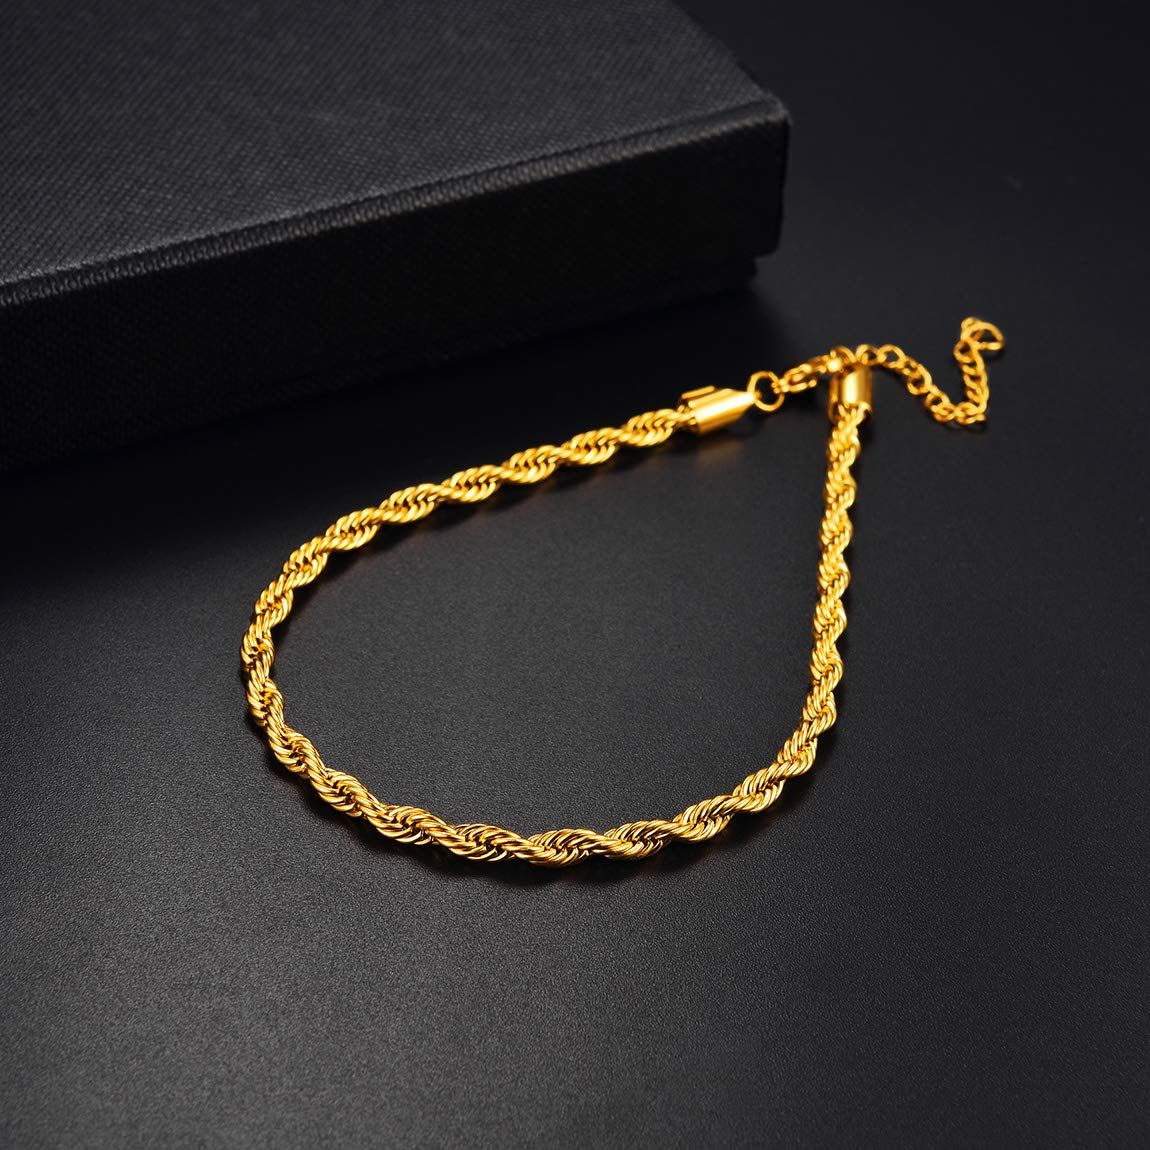 3mm Womens Mens Boys Chain Anklet,Classic Rope Anklet Jewellery for Mens Womens,18K Gold//Silver Anklet Chain,9+2inch//23+5cm